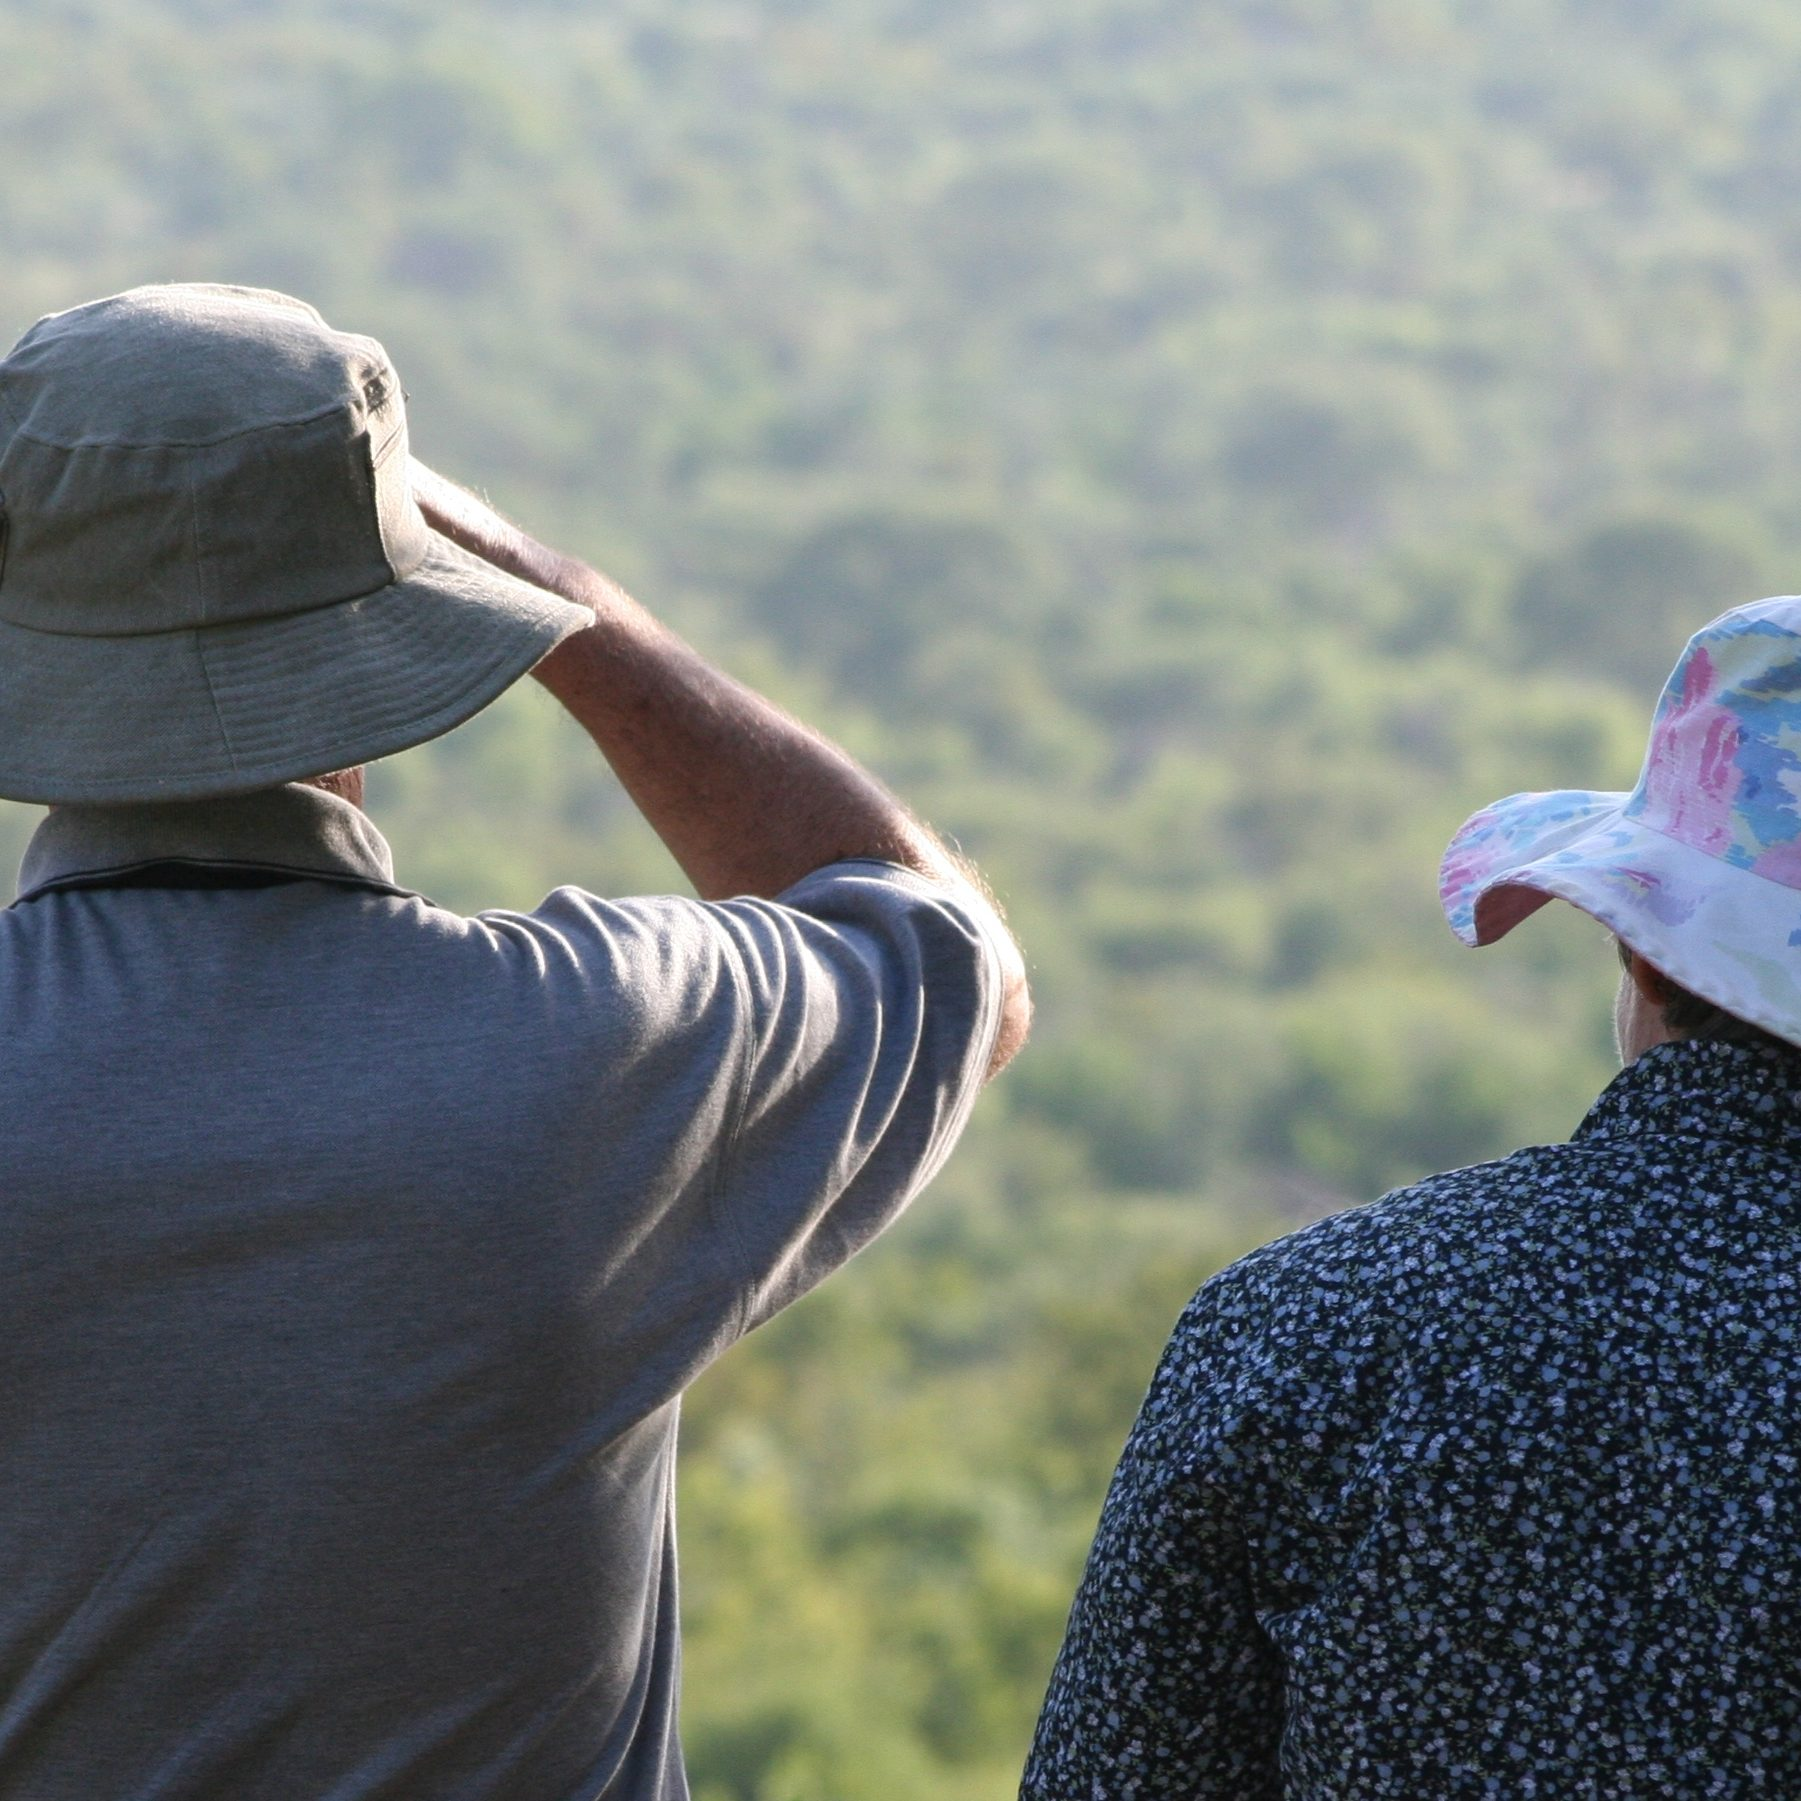 Game viewing in Kruger National Park